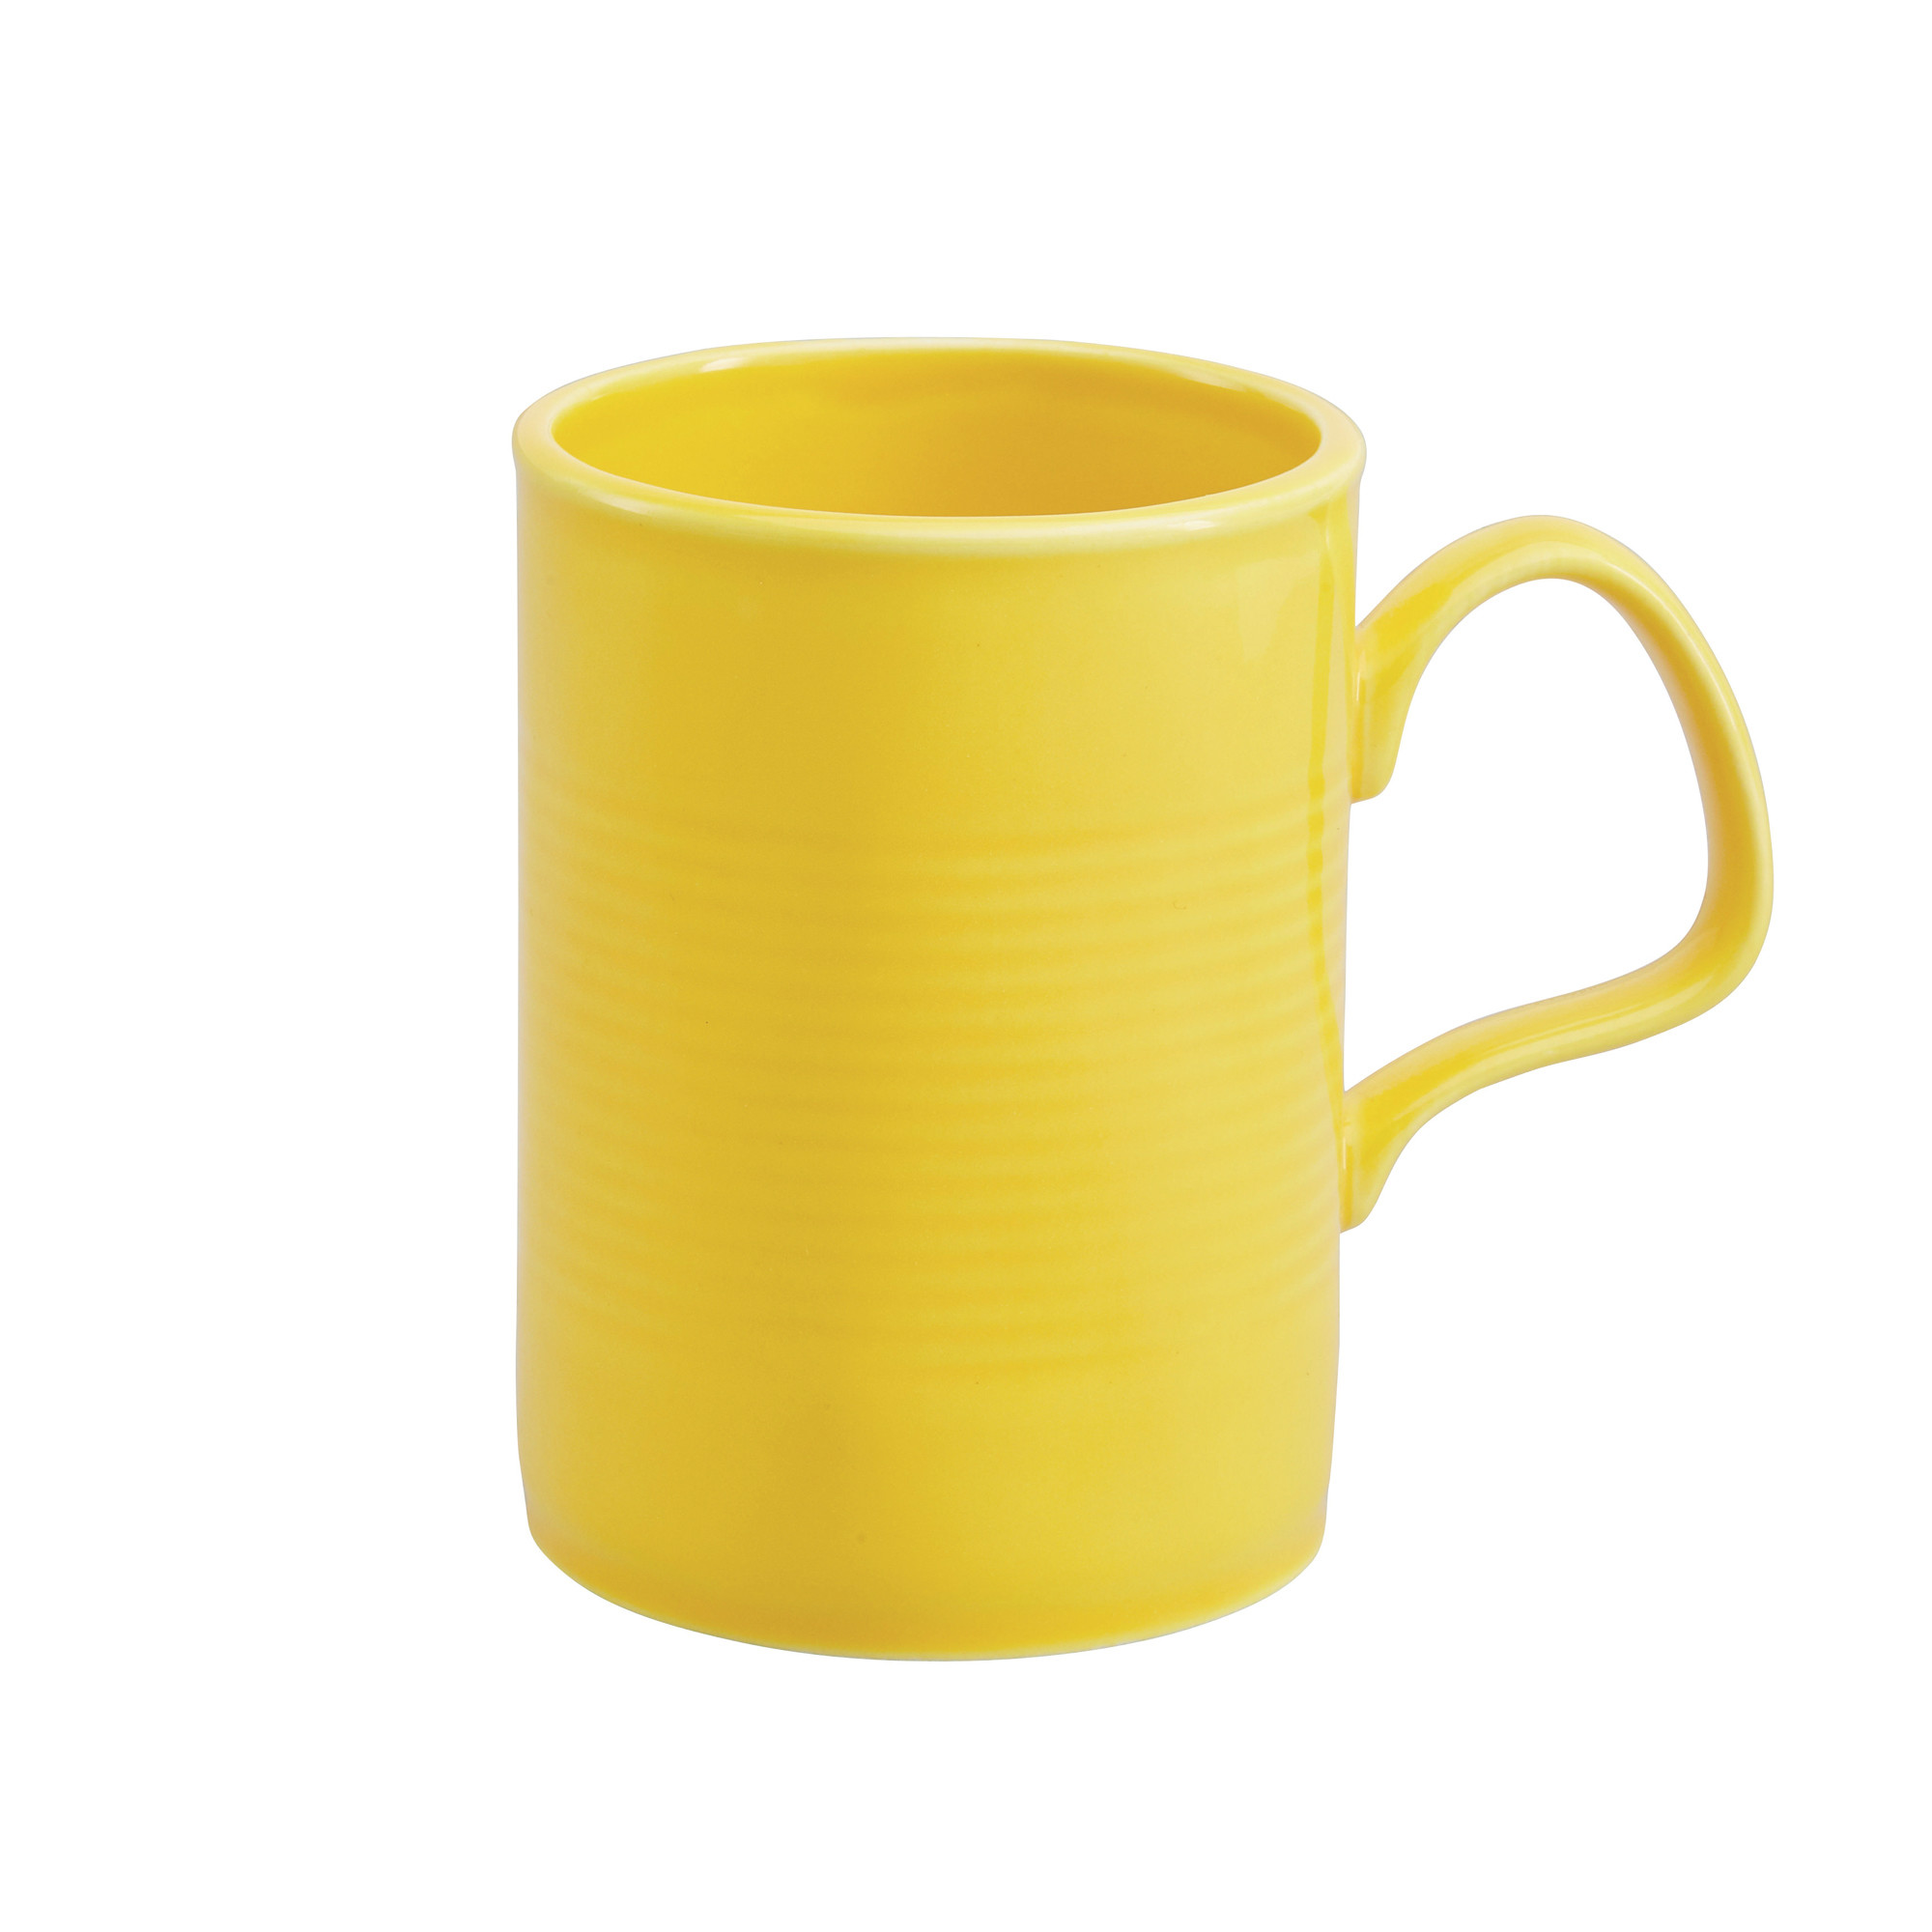 "<span class=""link fancybox-details-link""><a href=""/artists/37-stolen-form/works/1177-stolen-form-tin-can-mug-large-yellow-2017/"">View Detail Page</a></span><div class=""artist""><strong>Stolen Form</strong></div> <div class=""title""><em>Tin Can Mug - Large - Yellow</em>, 2017</div> <div class=""medium"">Ceramic</div> <div class=""dimensions"">10.5 x 7.5 x 12 cm</div> <div class=""edition_details""></div><div class=""price"">£12.00</div><div class=""copyright_line"">Copyright The Artist</div>"